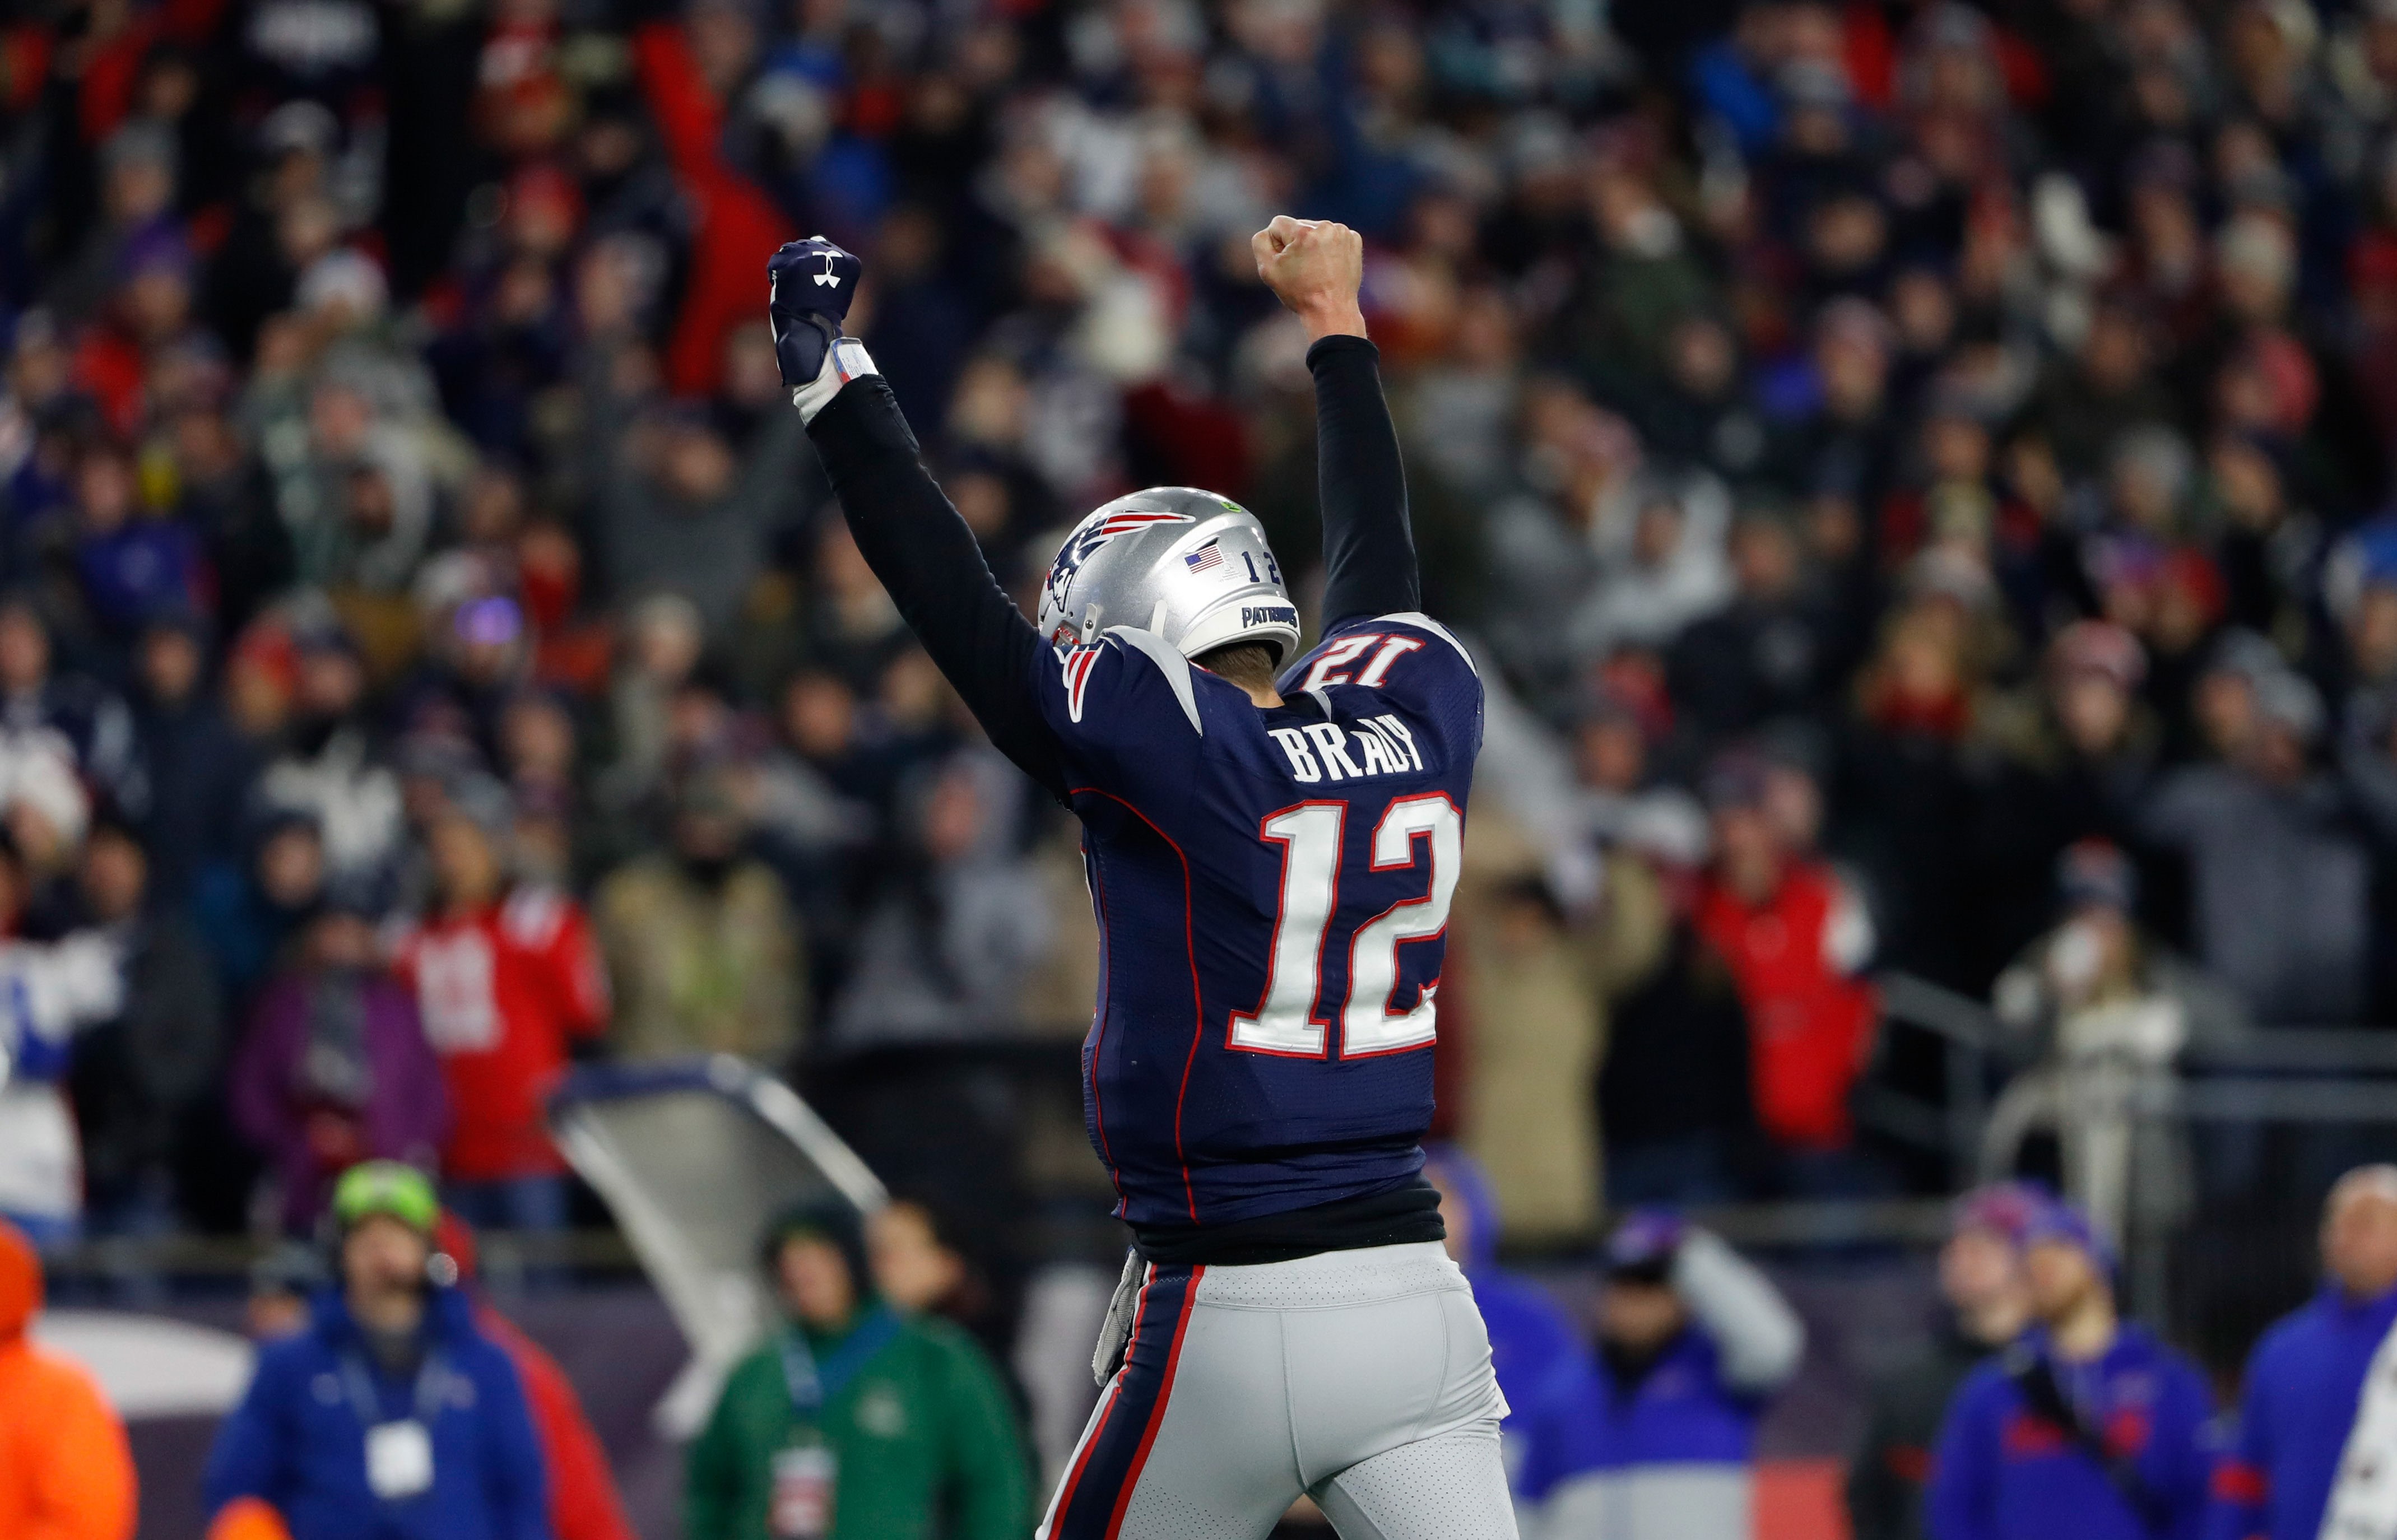 Tom Brady Details 'Exciting' But 'Very Emotional' Transition to Buccaneers